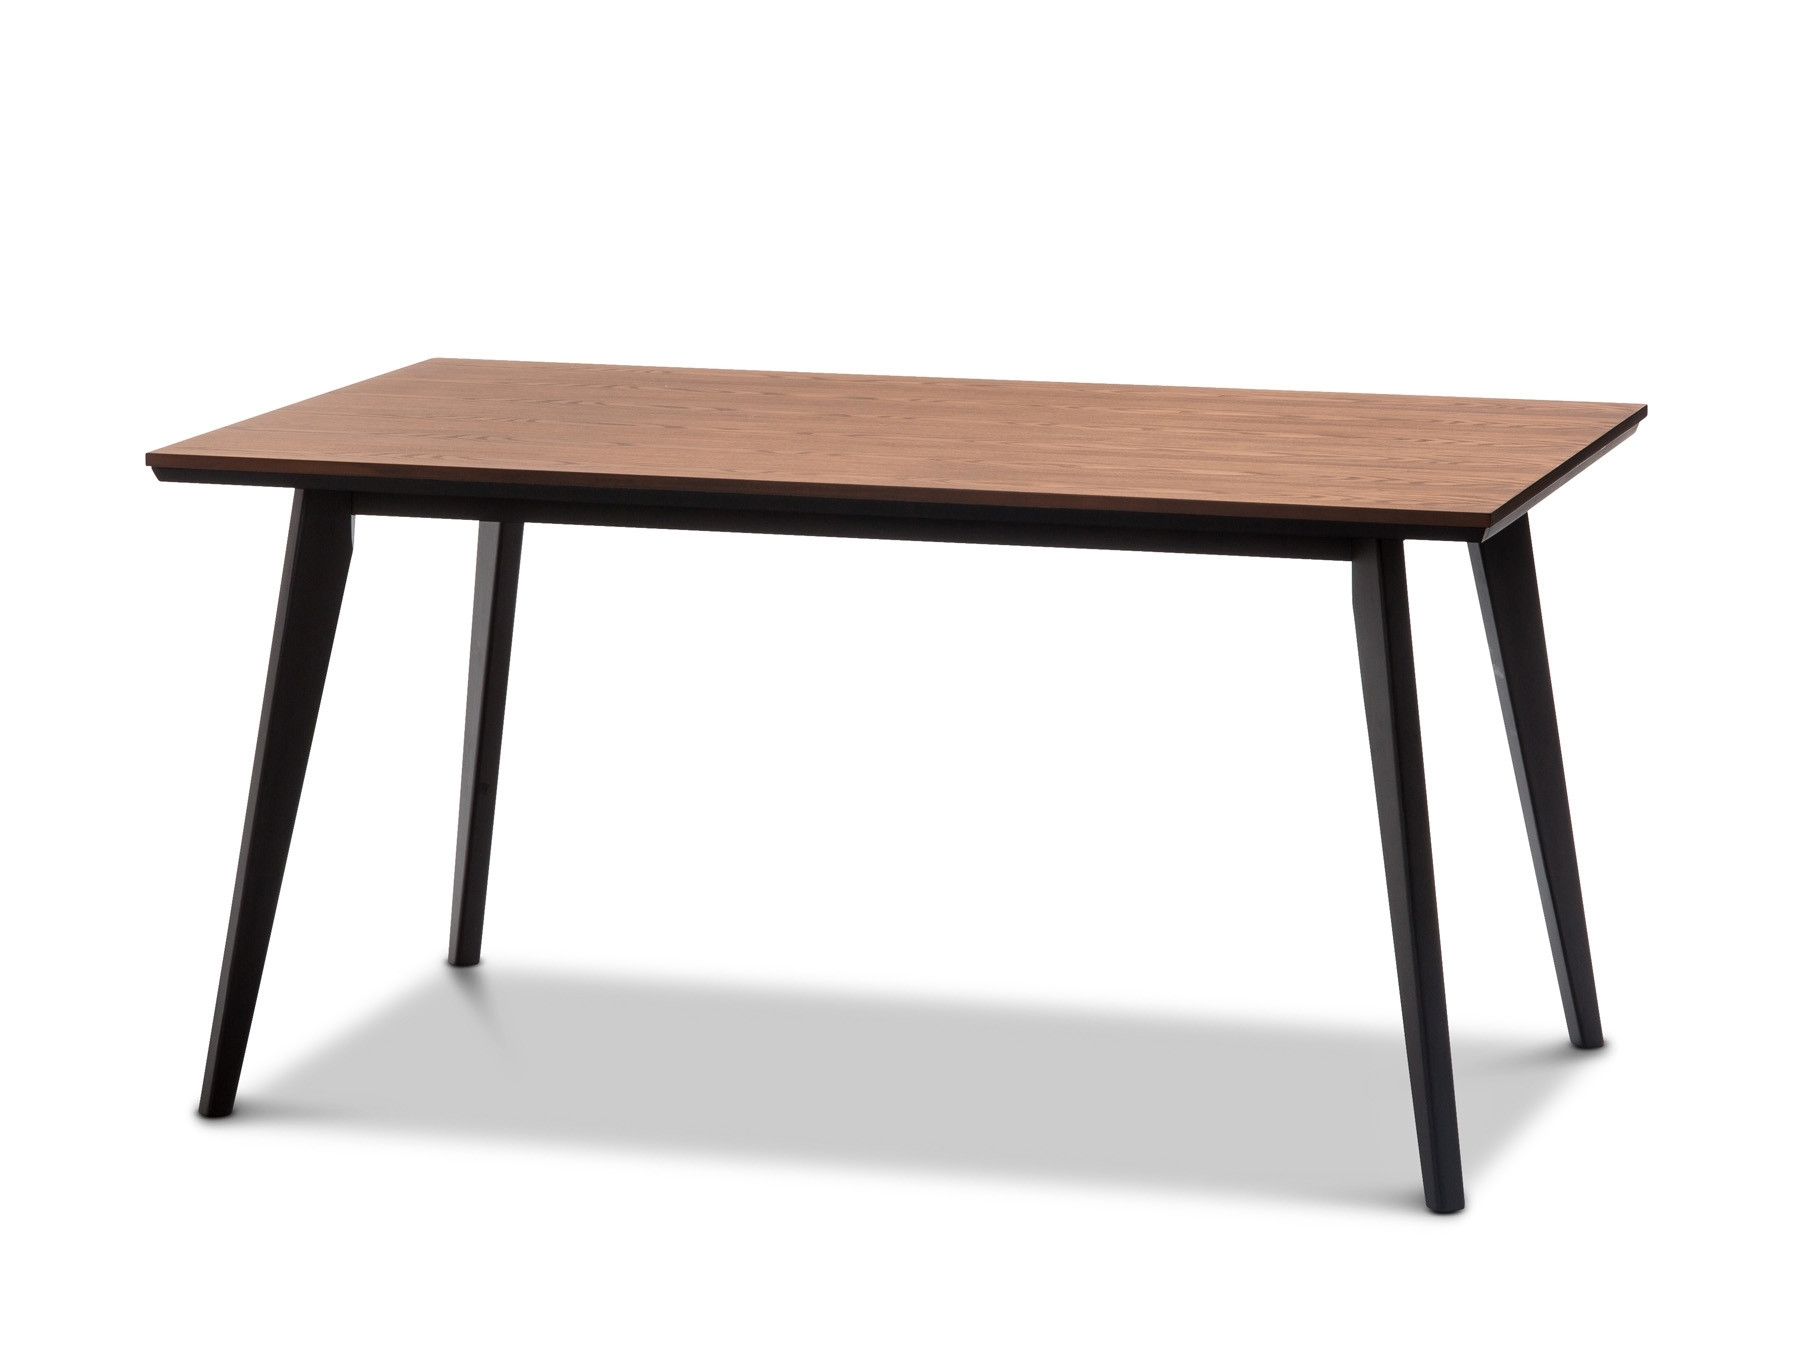 Wyatt Dining Table | Temple & Webster Within Latest Wyatt Dining Tables (Image 16 of 20)